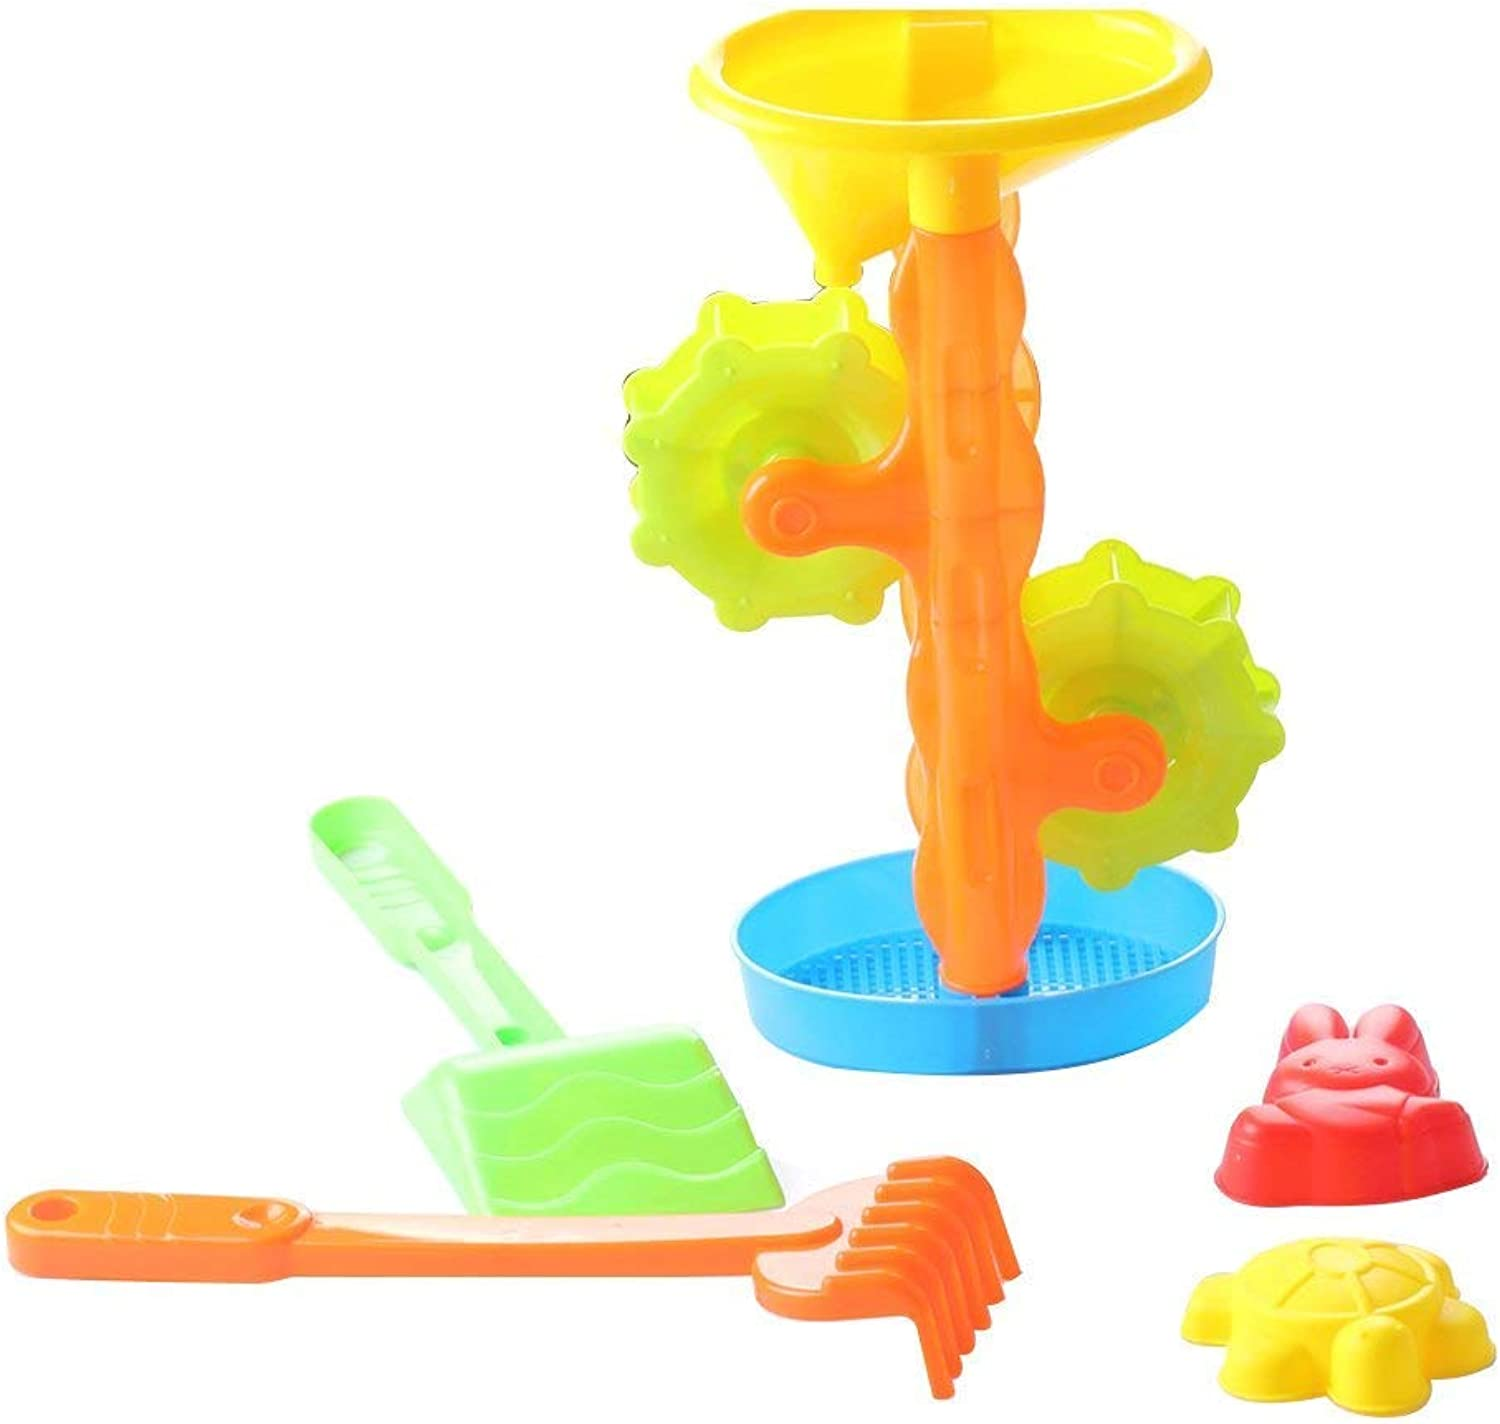 Polymer 5pcs Kids Beach Toys Set Double Sand Wheel Beach Playset with Shovel Rake and Shape Molds for Kids (Mixed colors)